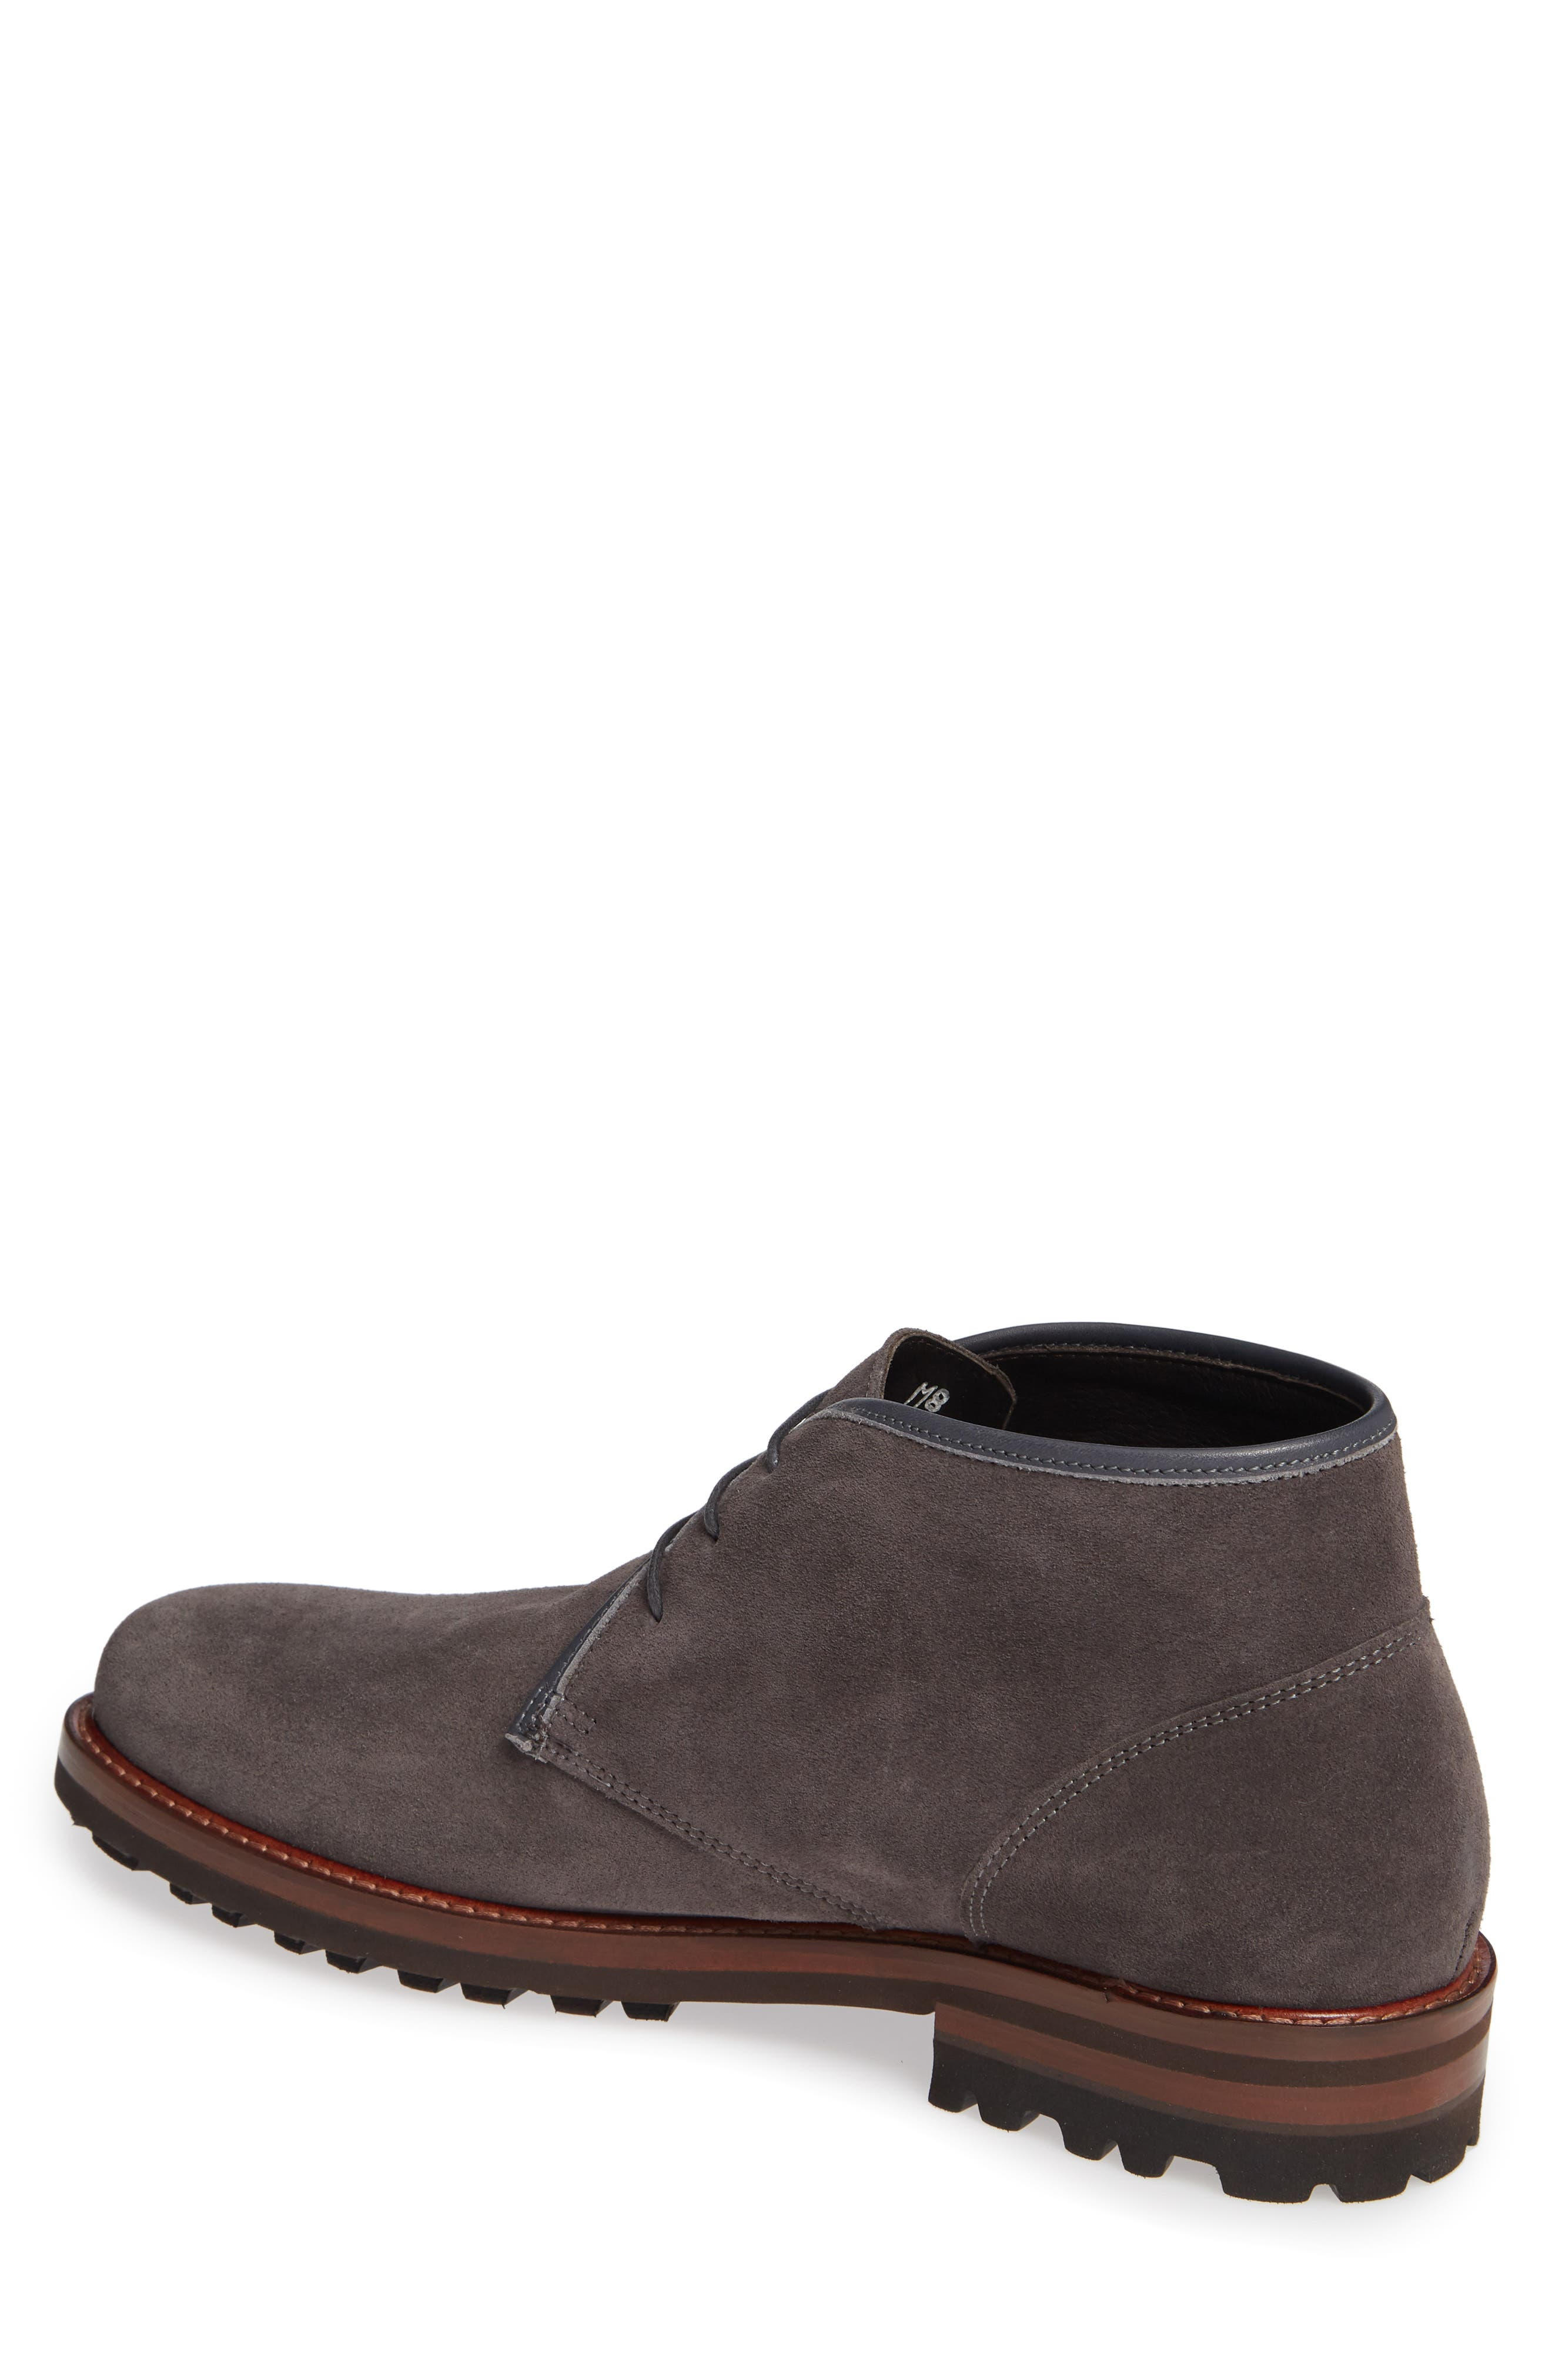 MONTE ROSSO,                             Brixen Water Resistant Chukka Waterproof Boot,                             Alternate thumbnail 2, color,                             021